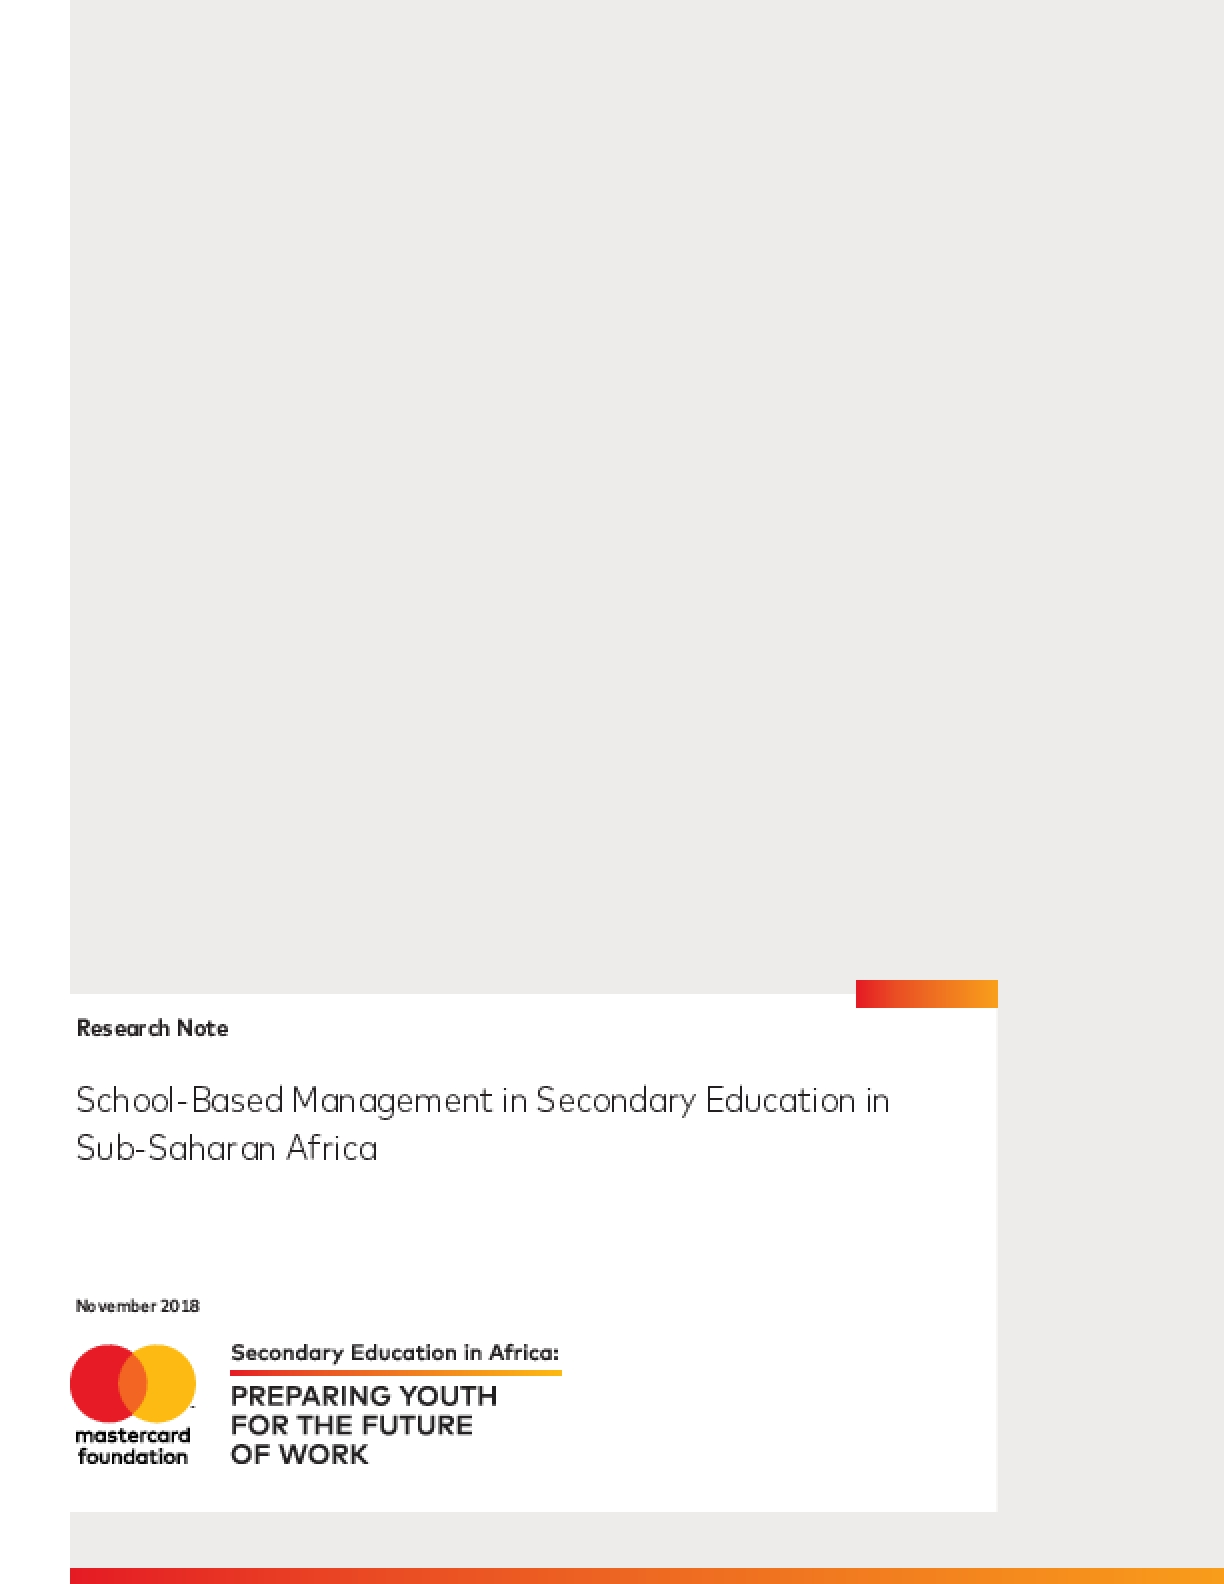 School-Based Management in Secondary Education in Sub-Saharan Africa